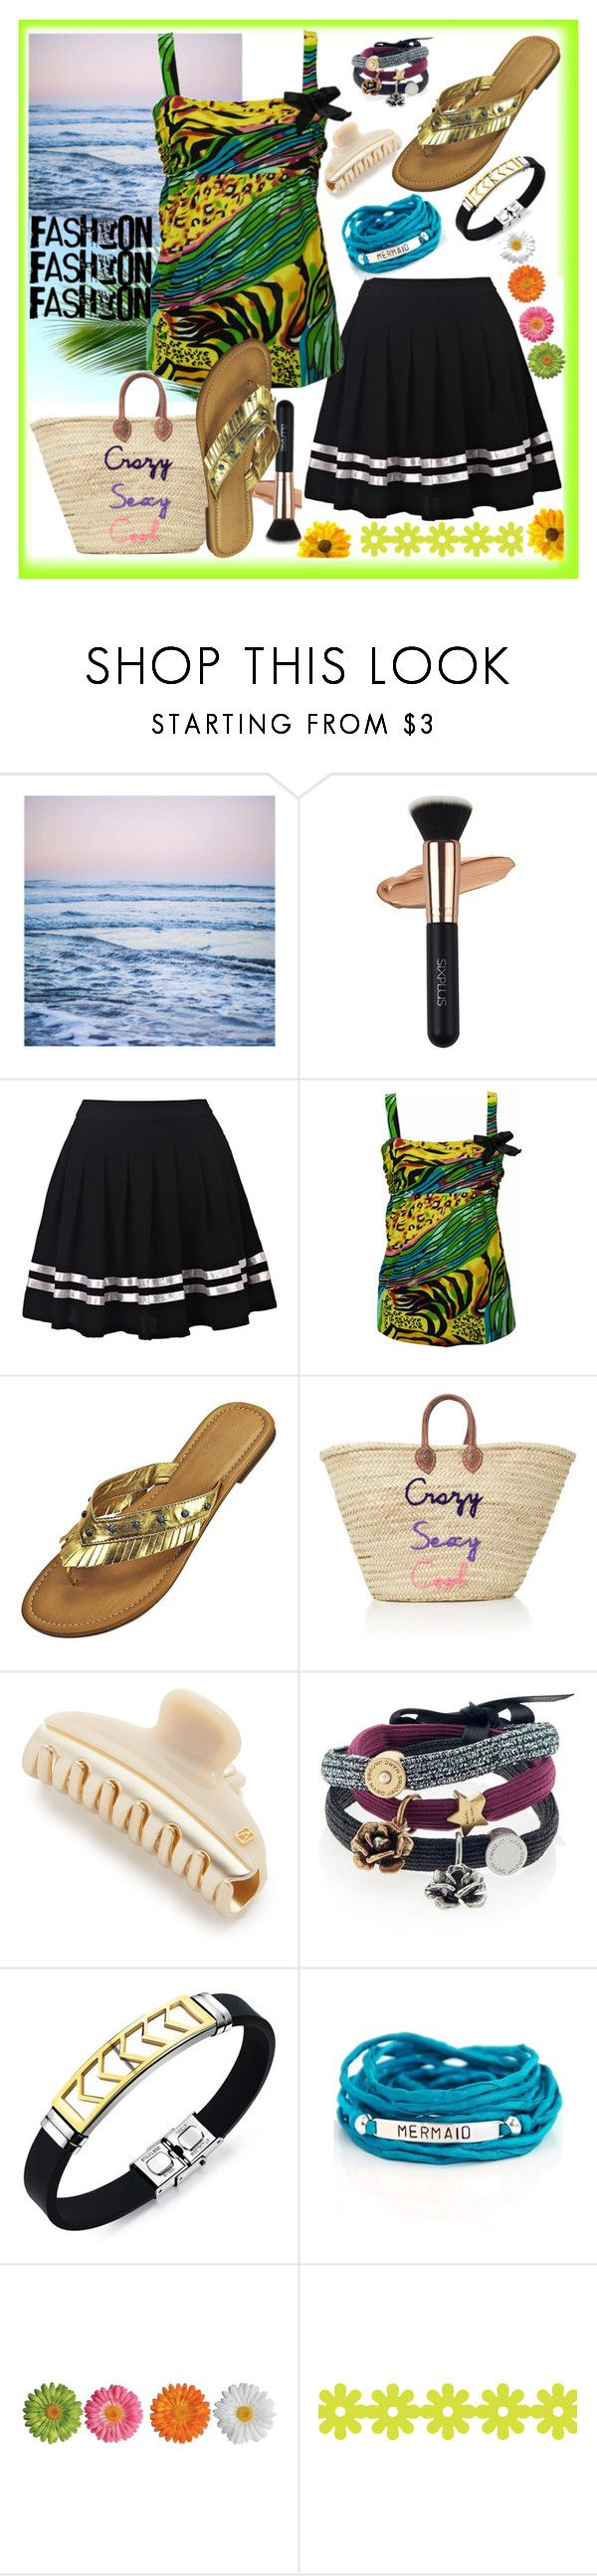 """Summer Night Dinner Date"" by westcoastcharmed ❤ liked on Polyvore featuring Leah Flores, Classified, Alexandre de Paris, Marc Jacobs and Blooming Lotus Jewelry"